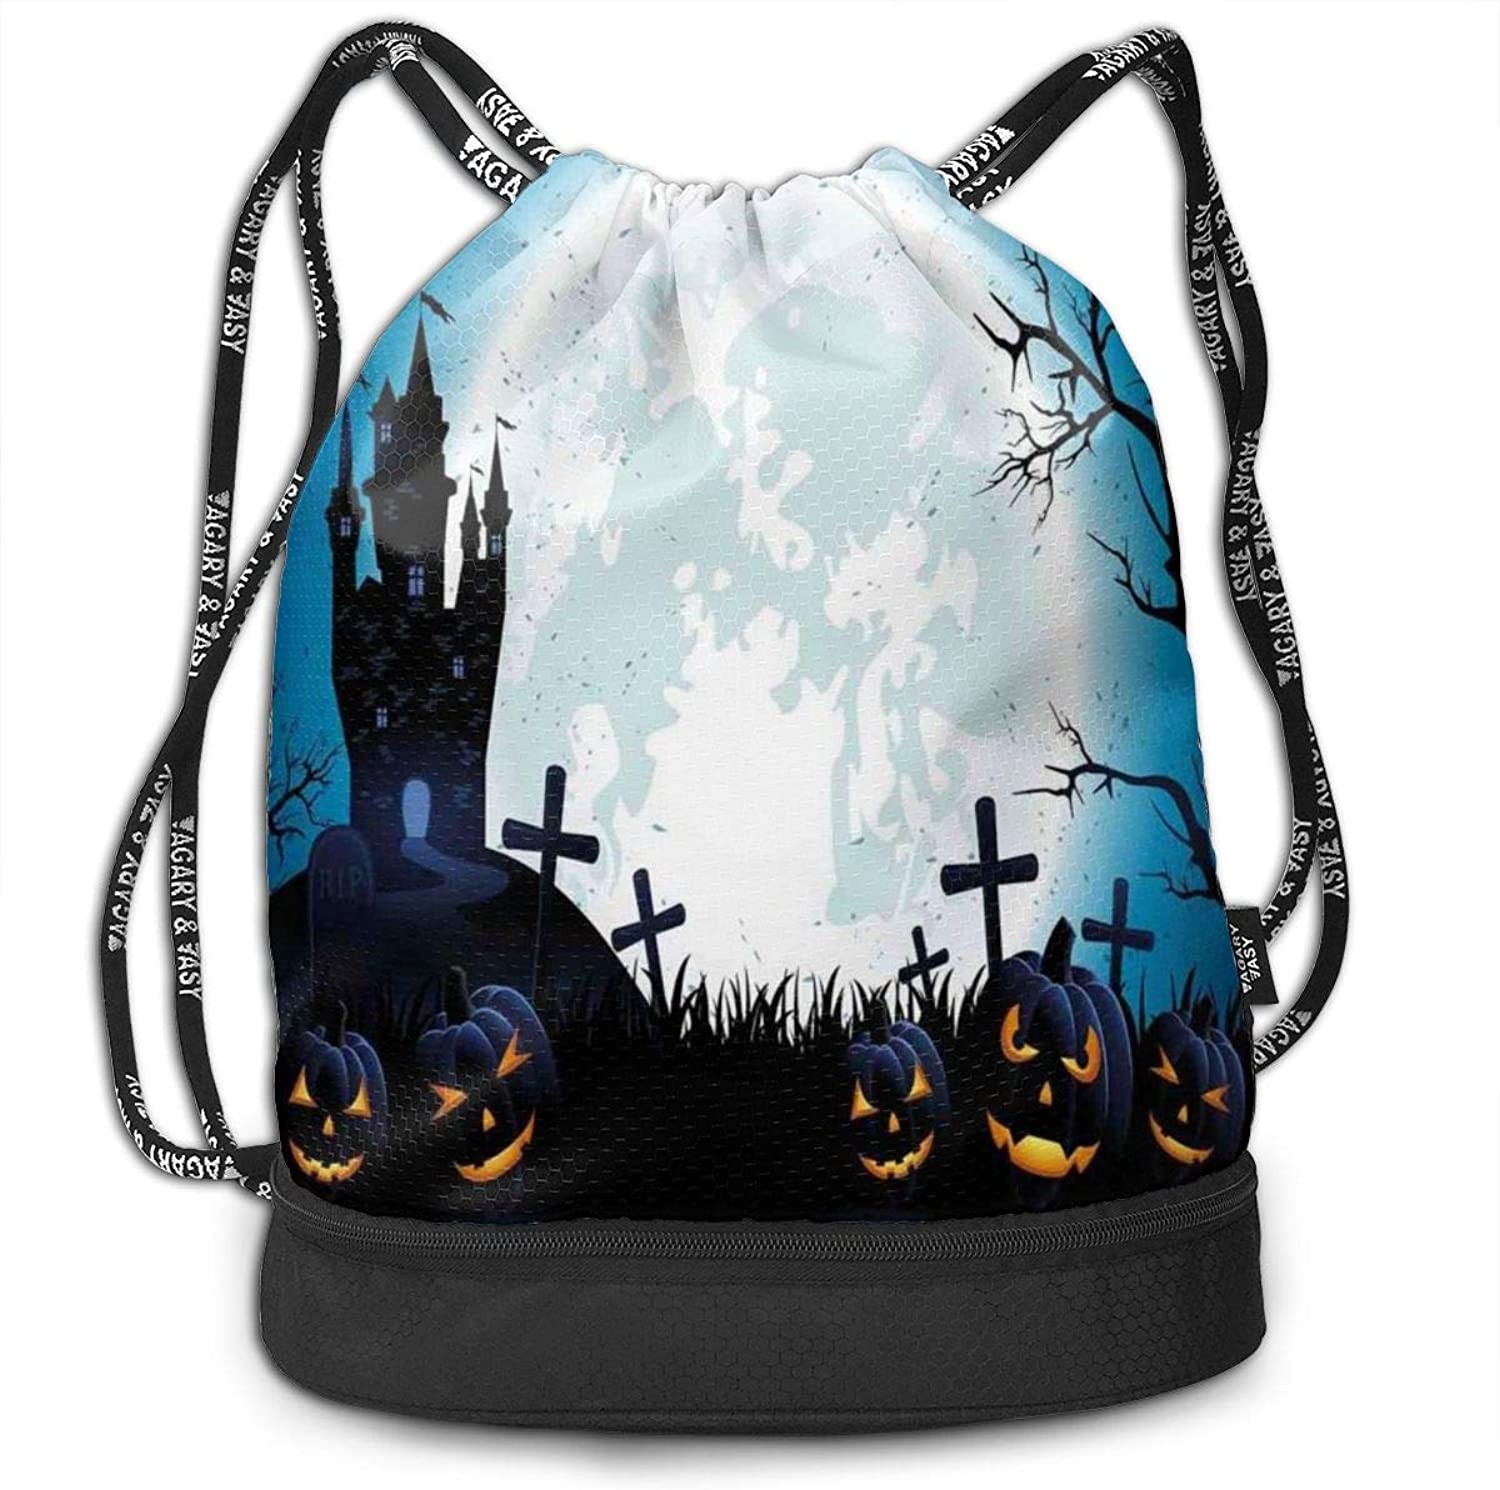 VANMASS Bundle Backpack Halloween Spooky Tree Pumpkin Sketchy Gym Large Capacity Shoulder Drawstring Bags